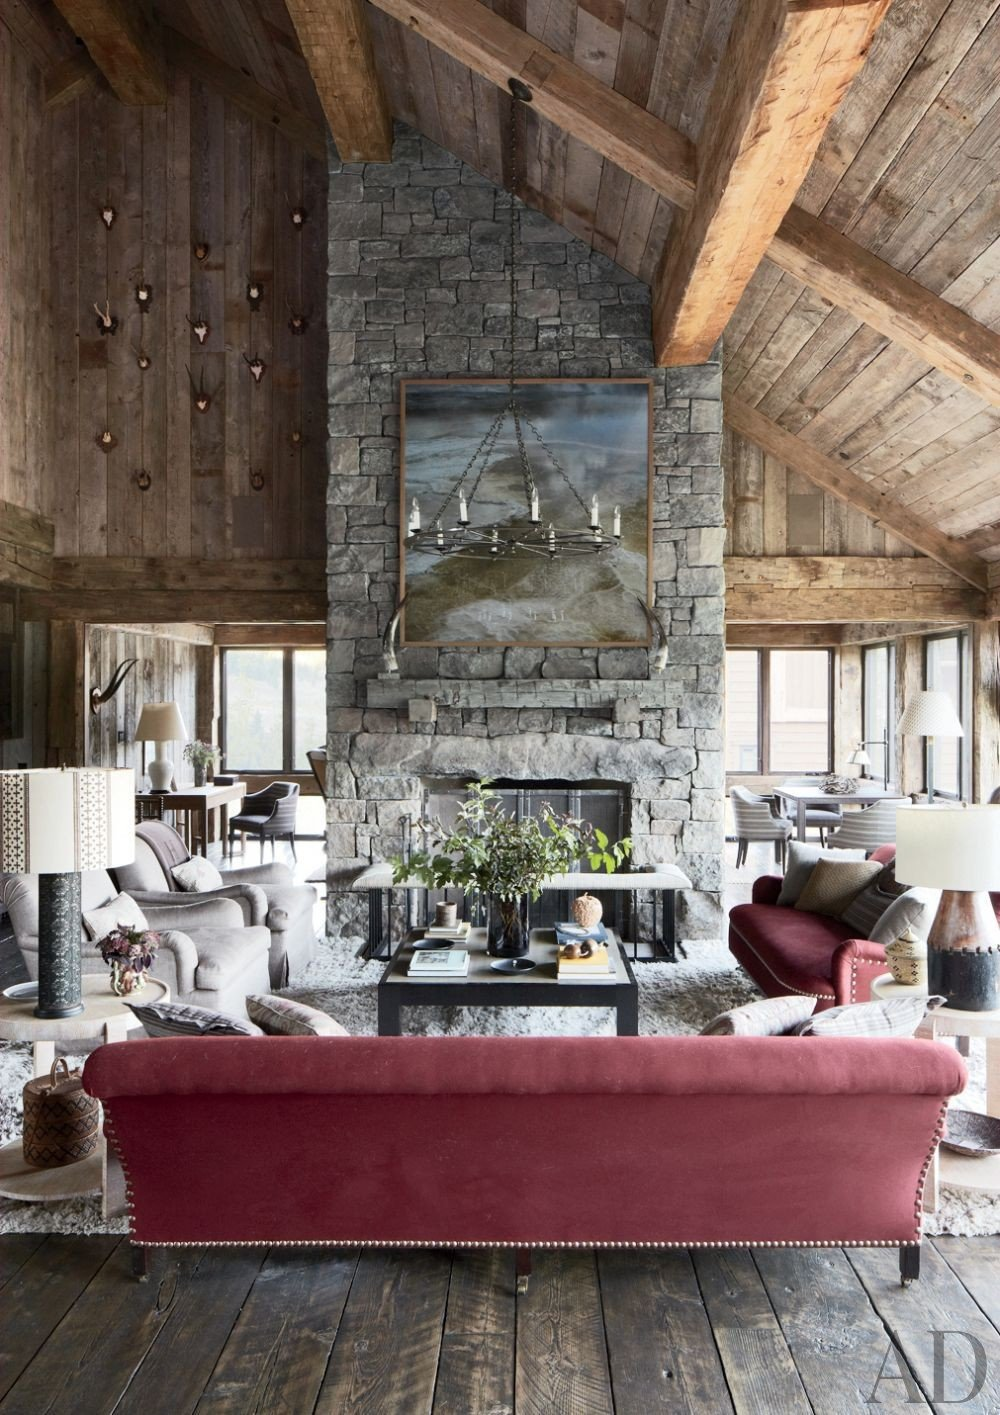 Home Decor Pictures Living Room Inspirational 15 Rustic Home Decor Ideas for Your Living Room